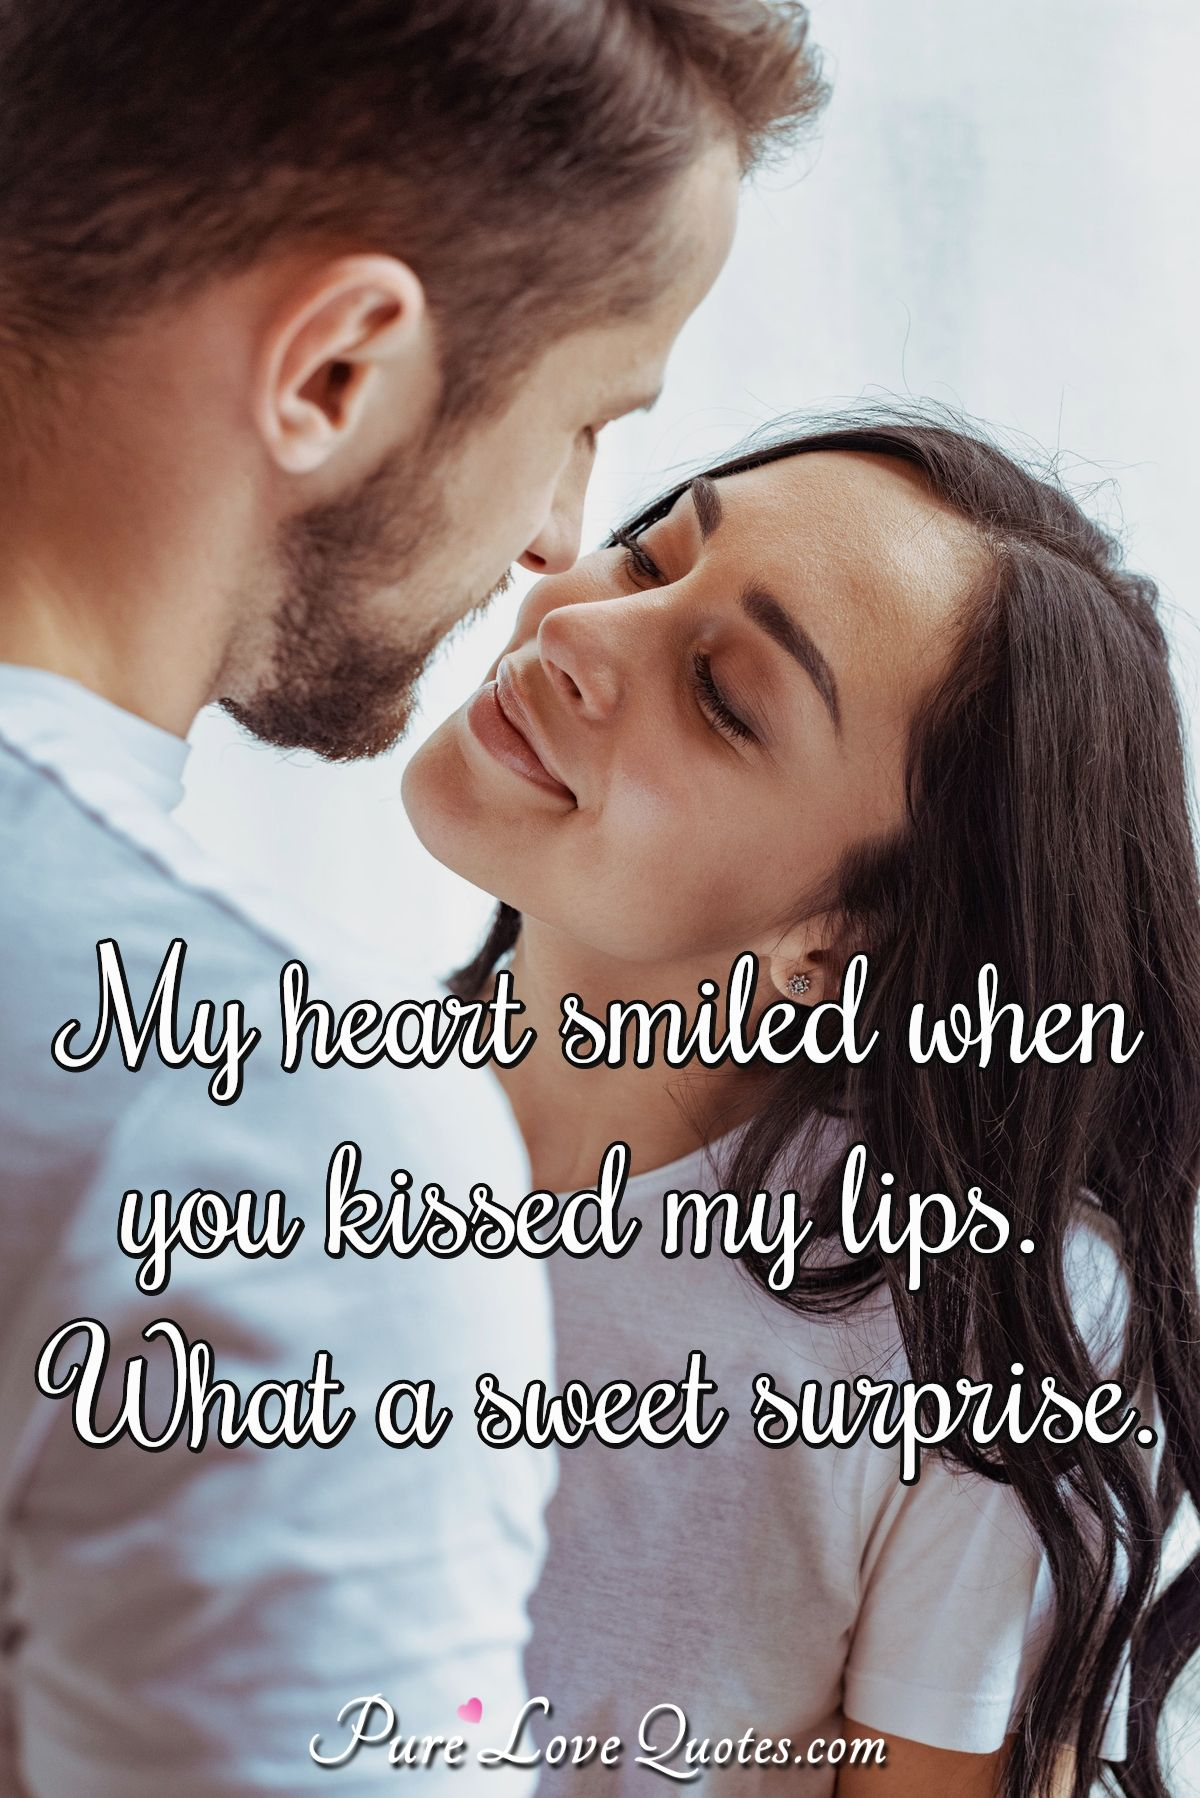 My heart smiled when you kissed my lips. What a sweet surprise. - Anonymous